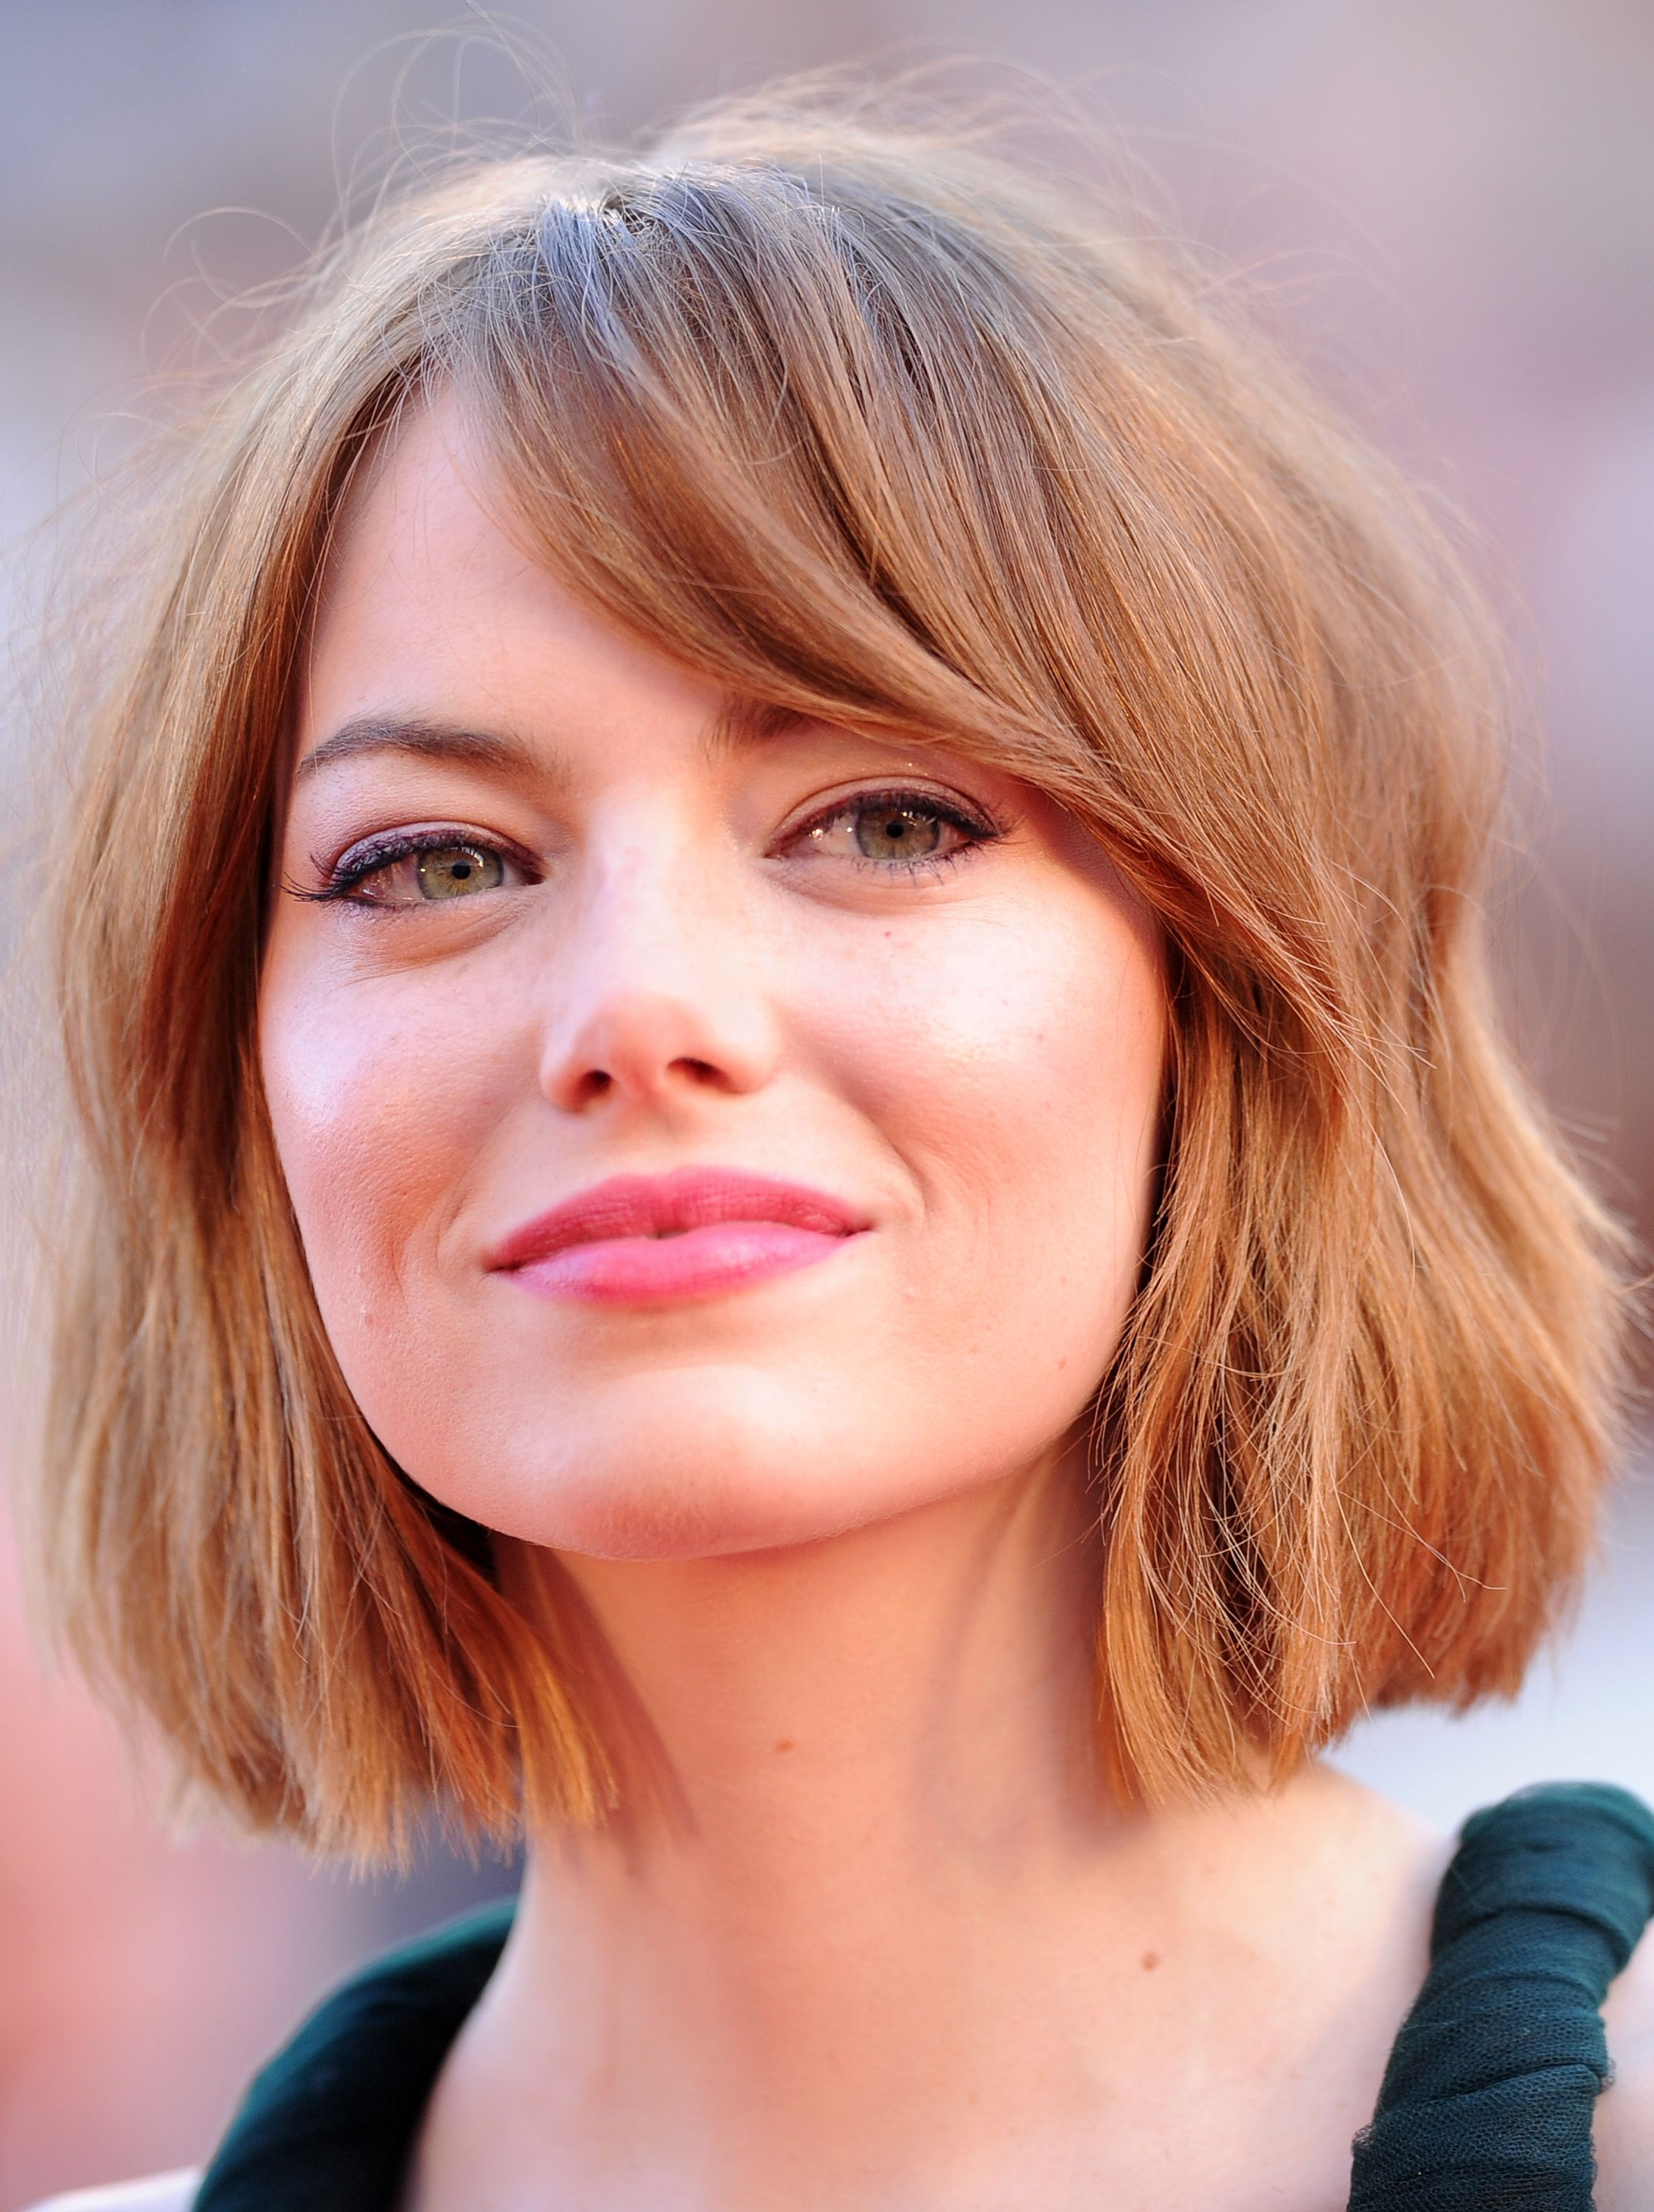 Bob Hair Styled Bob Hairstyles For 2018  45 Short Haircut Trends To Try Now